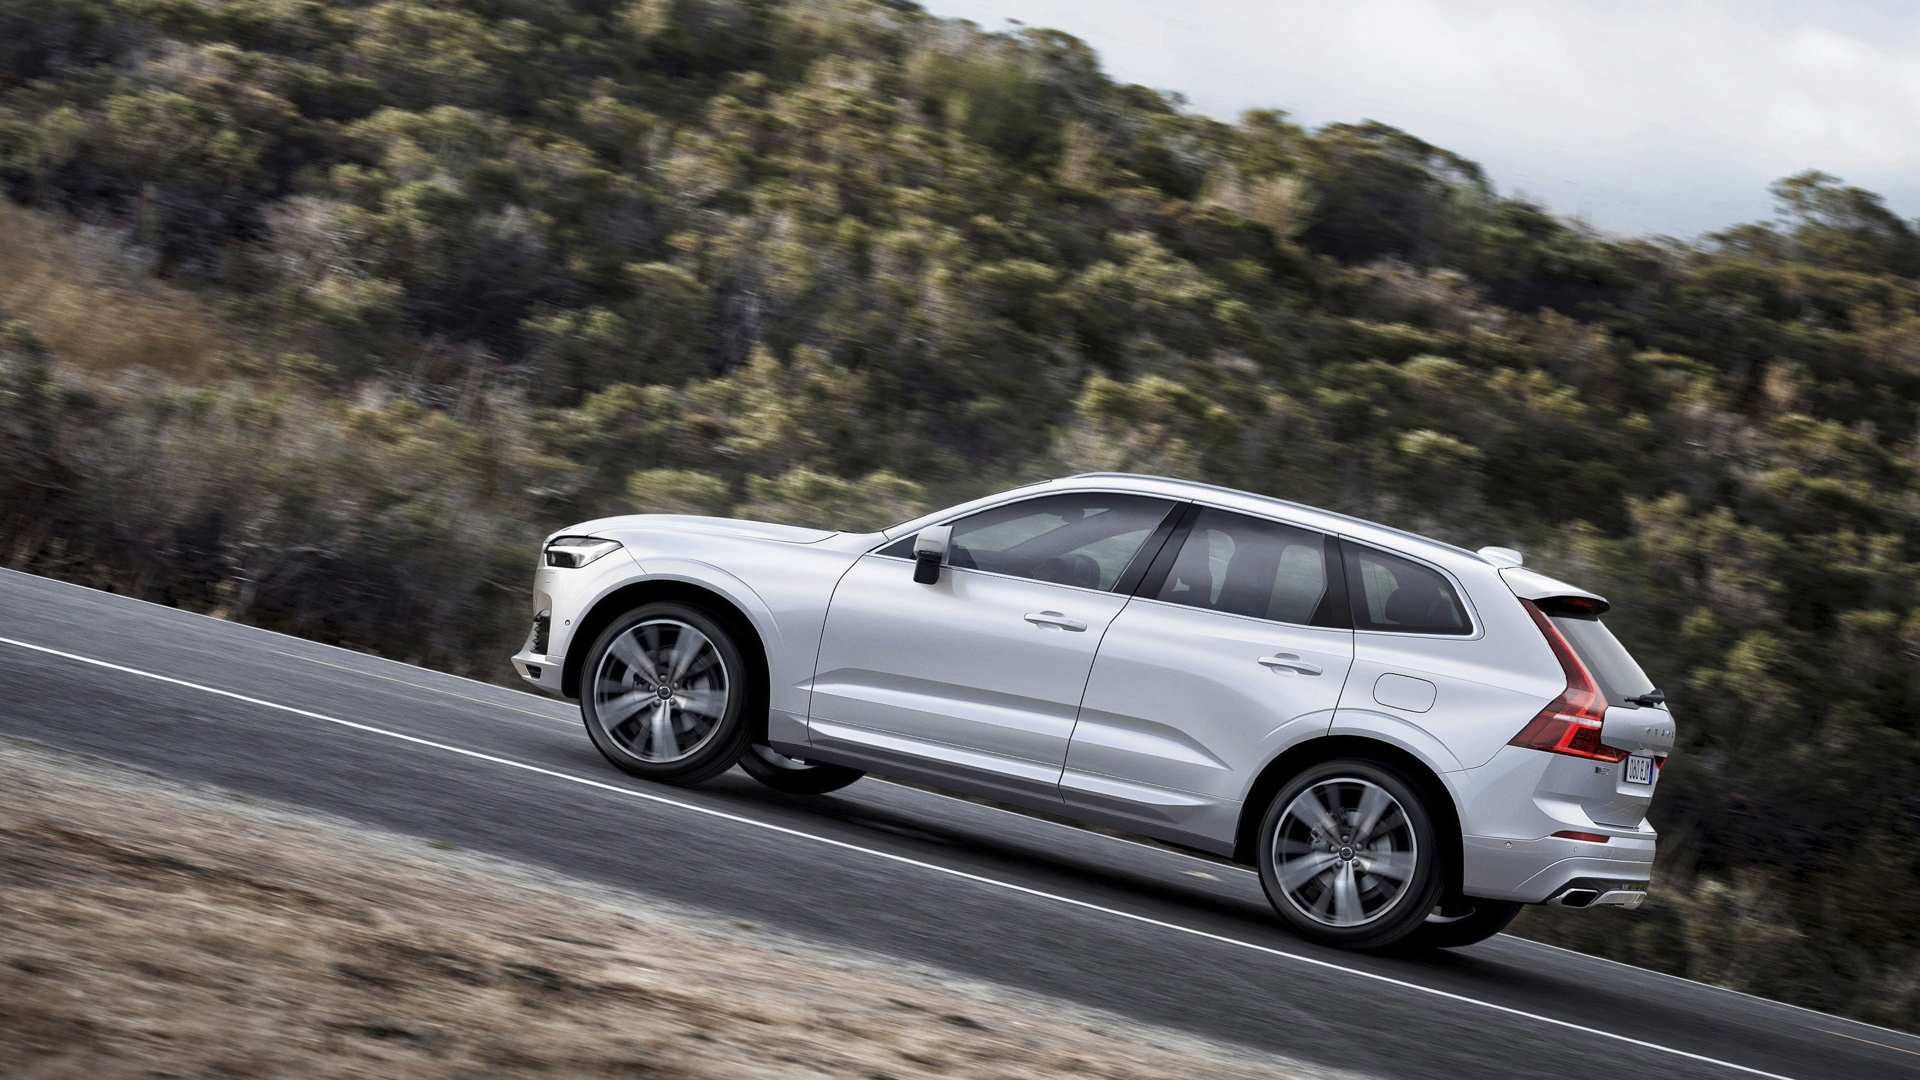 50 All New Best Volvo 2019 Xc60 Review Exterior Price for Best Volvo 2019 Xc60 Review Exterior